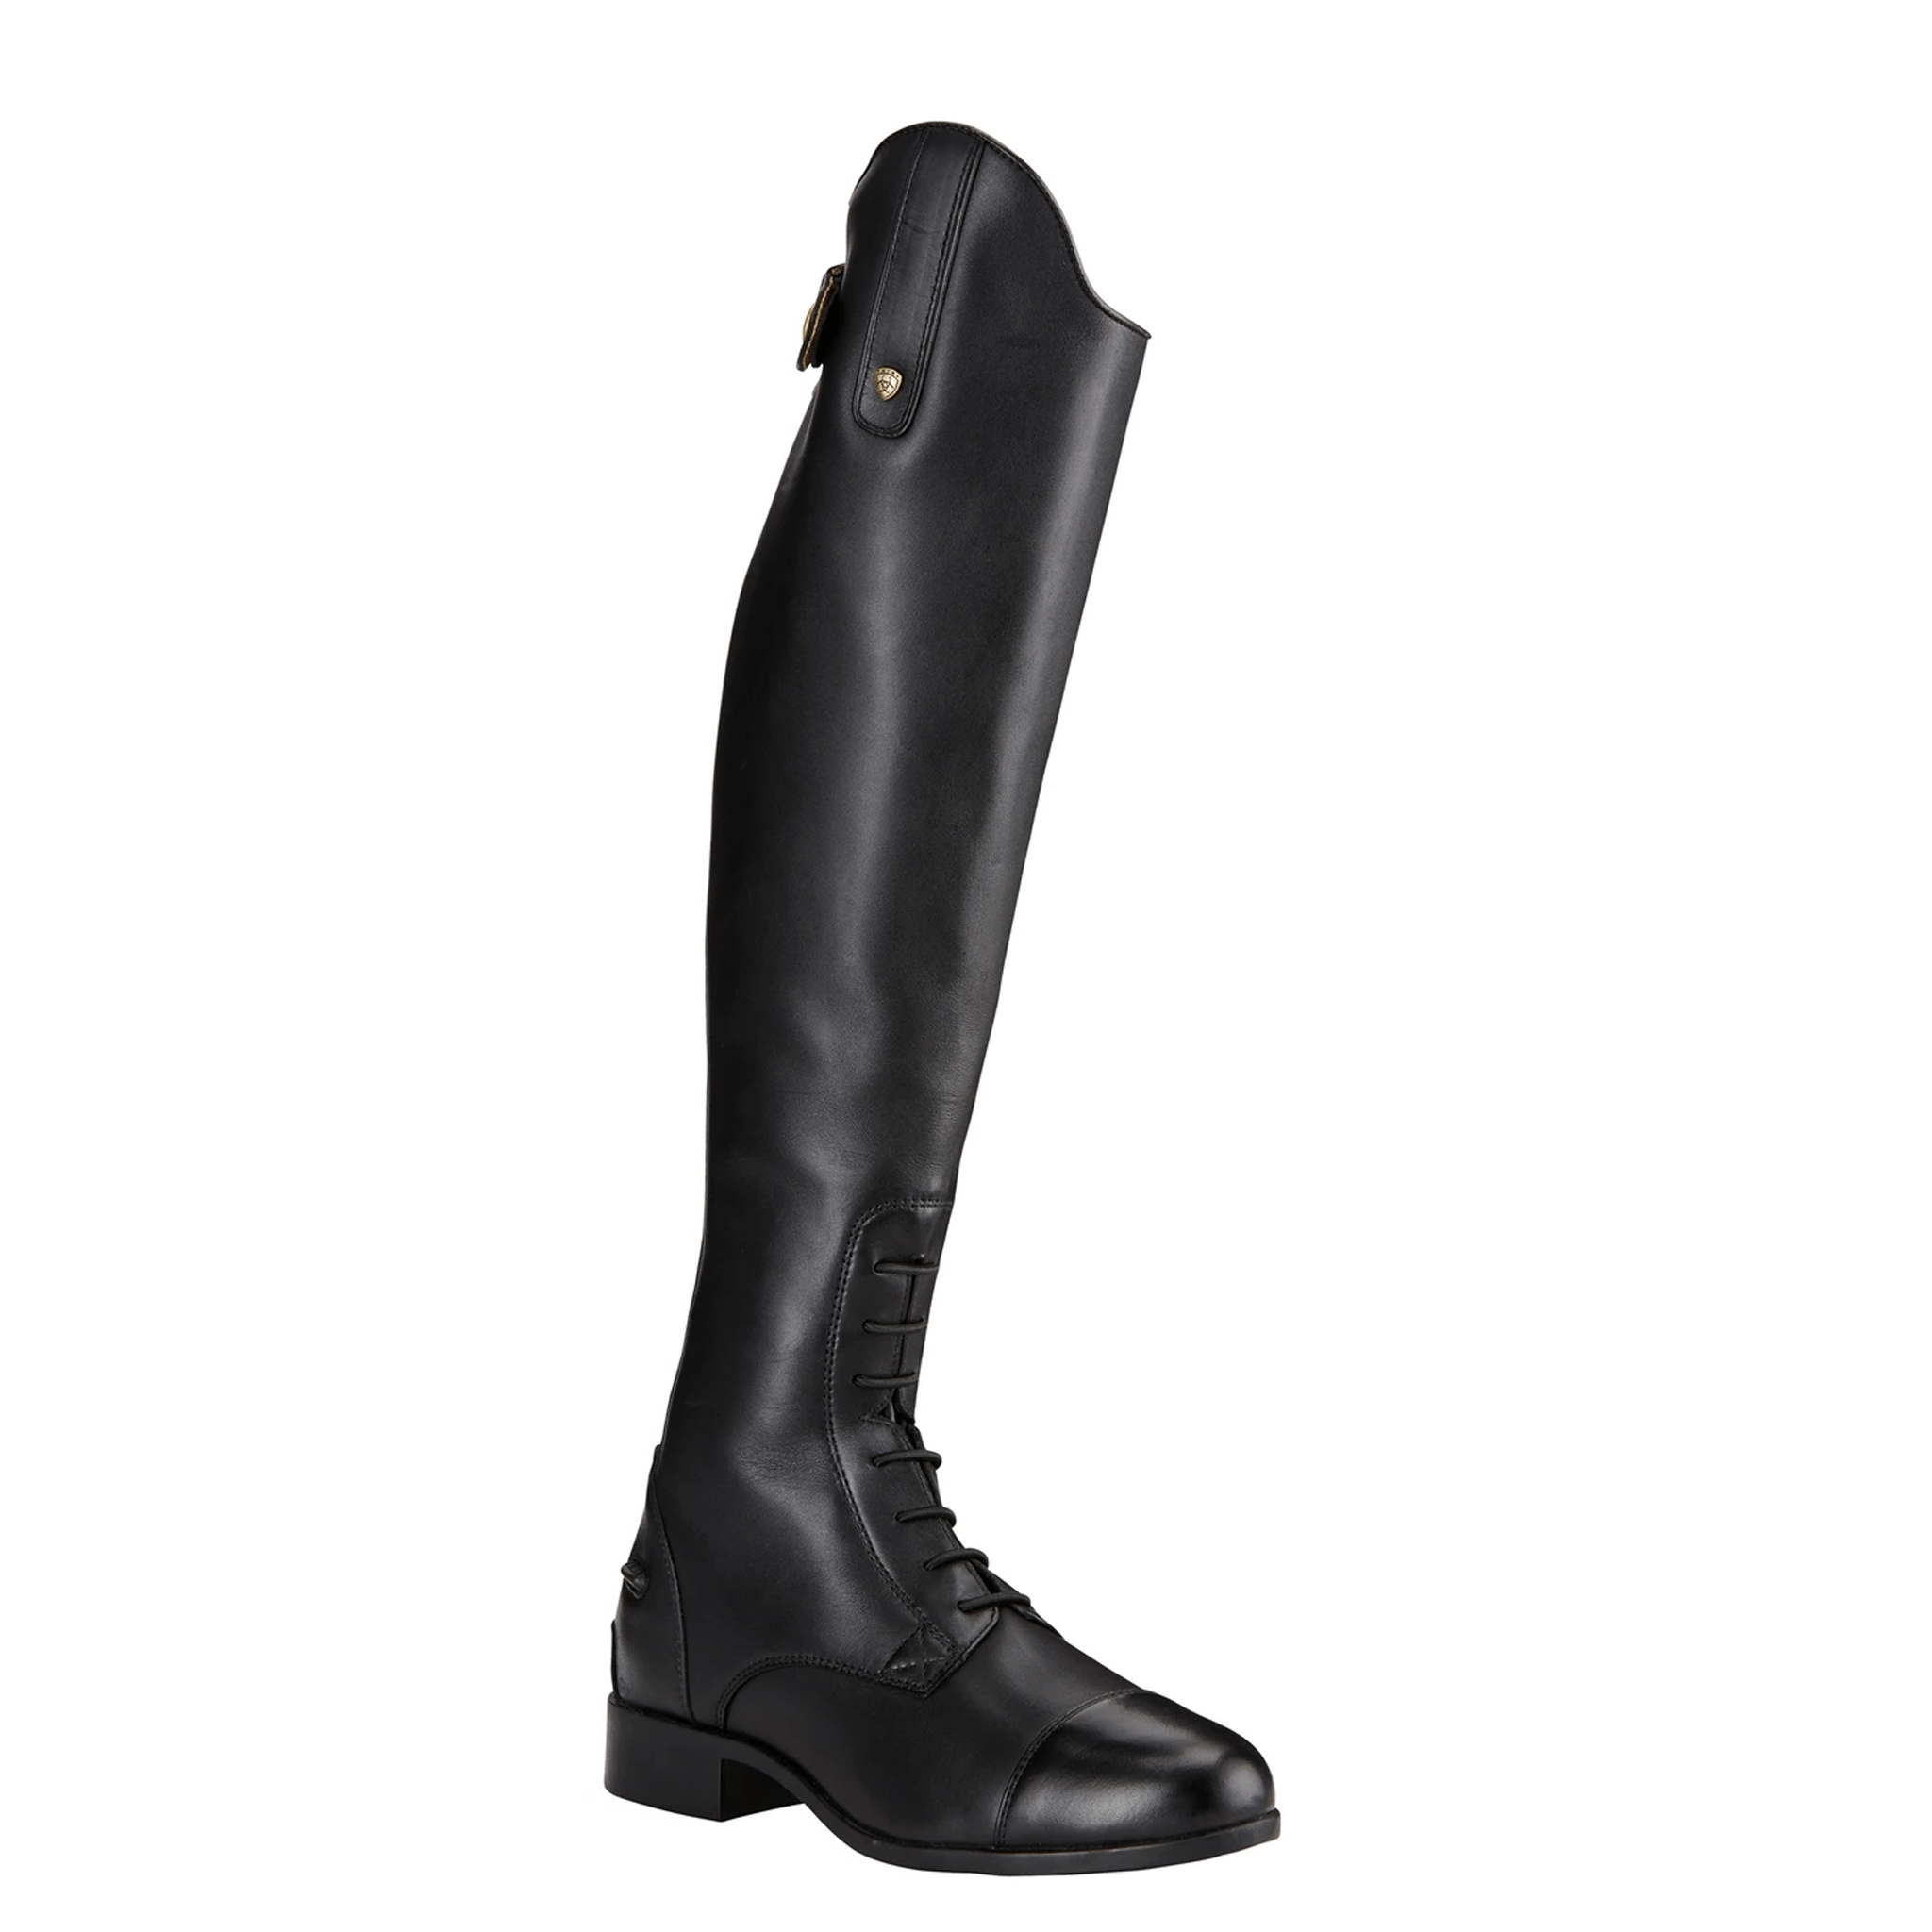 Ariat Heritage Contour II Field Boots - Black